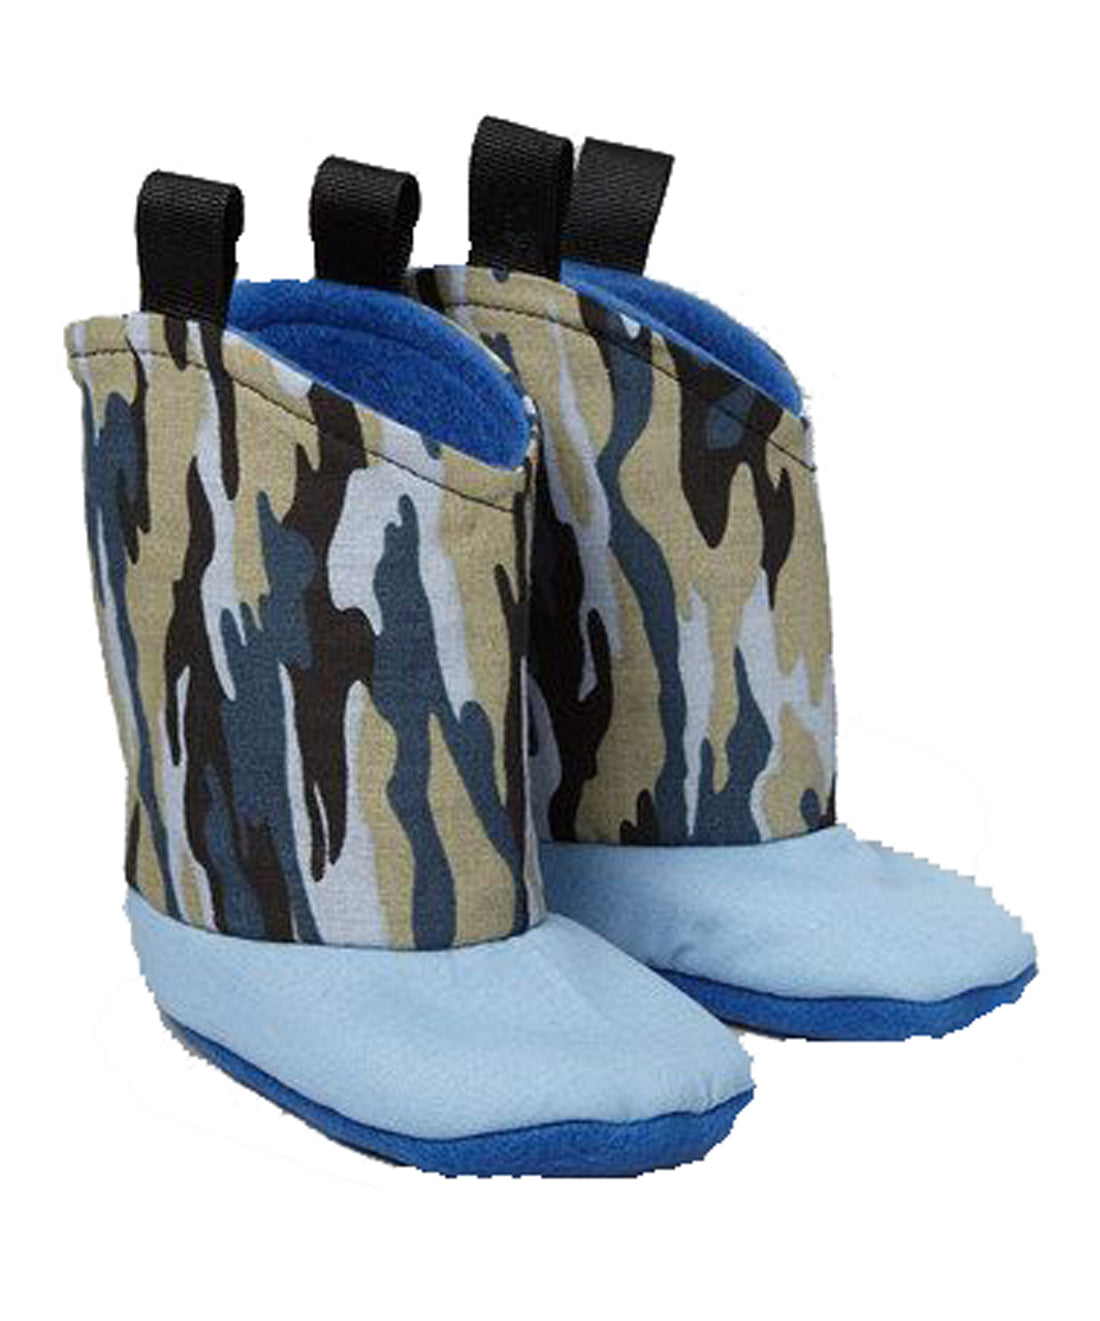 Camo Blue Boots for that little hunter in your life